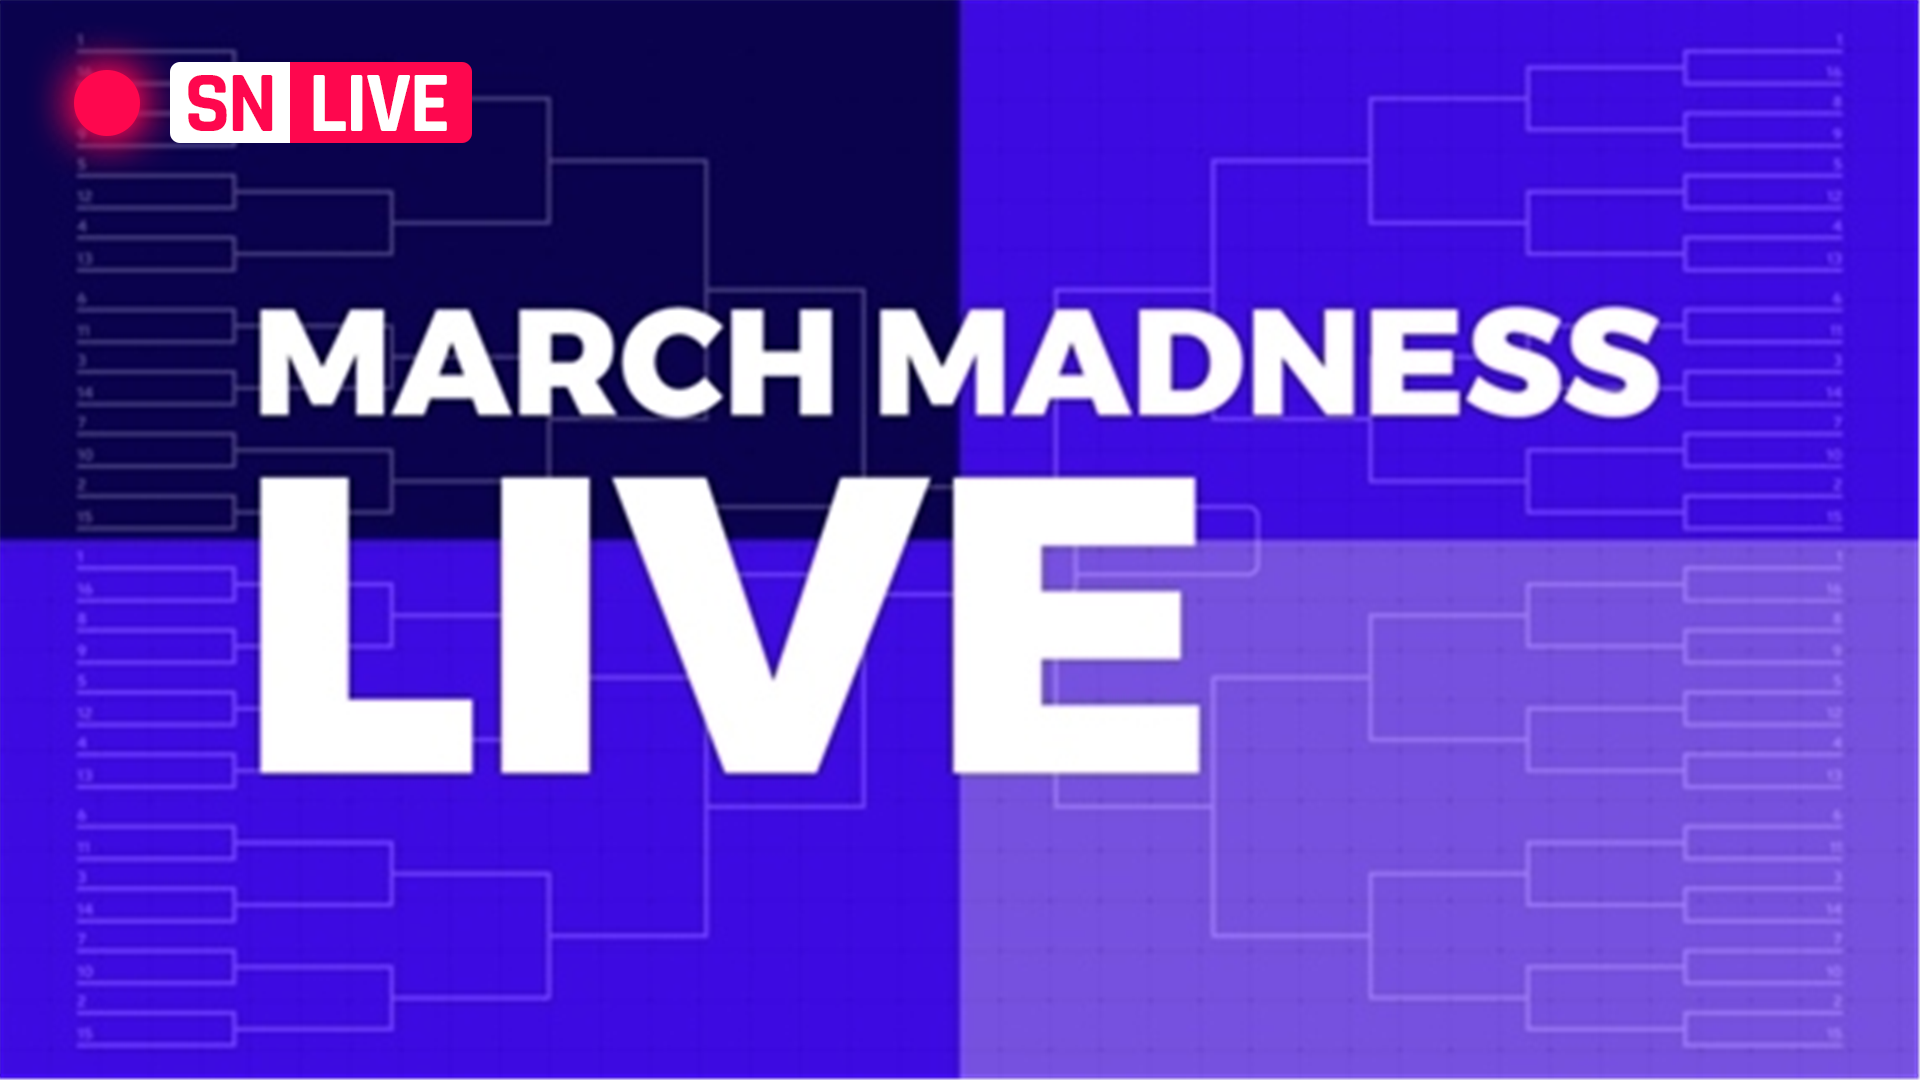 March Madness Live Score: Full Schedule, Scores, How to Watch 2021 NCAA Tournament Games